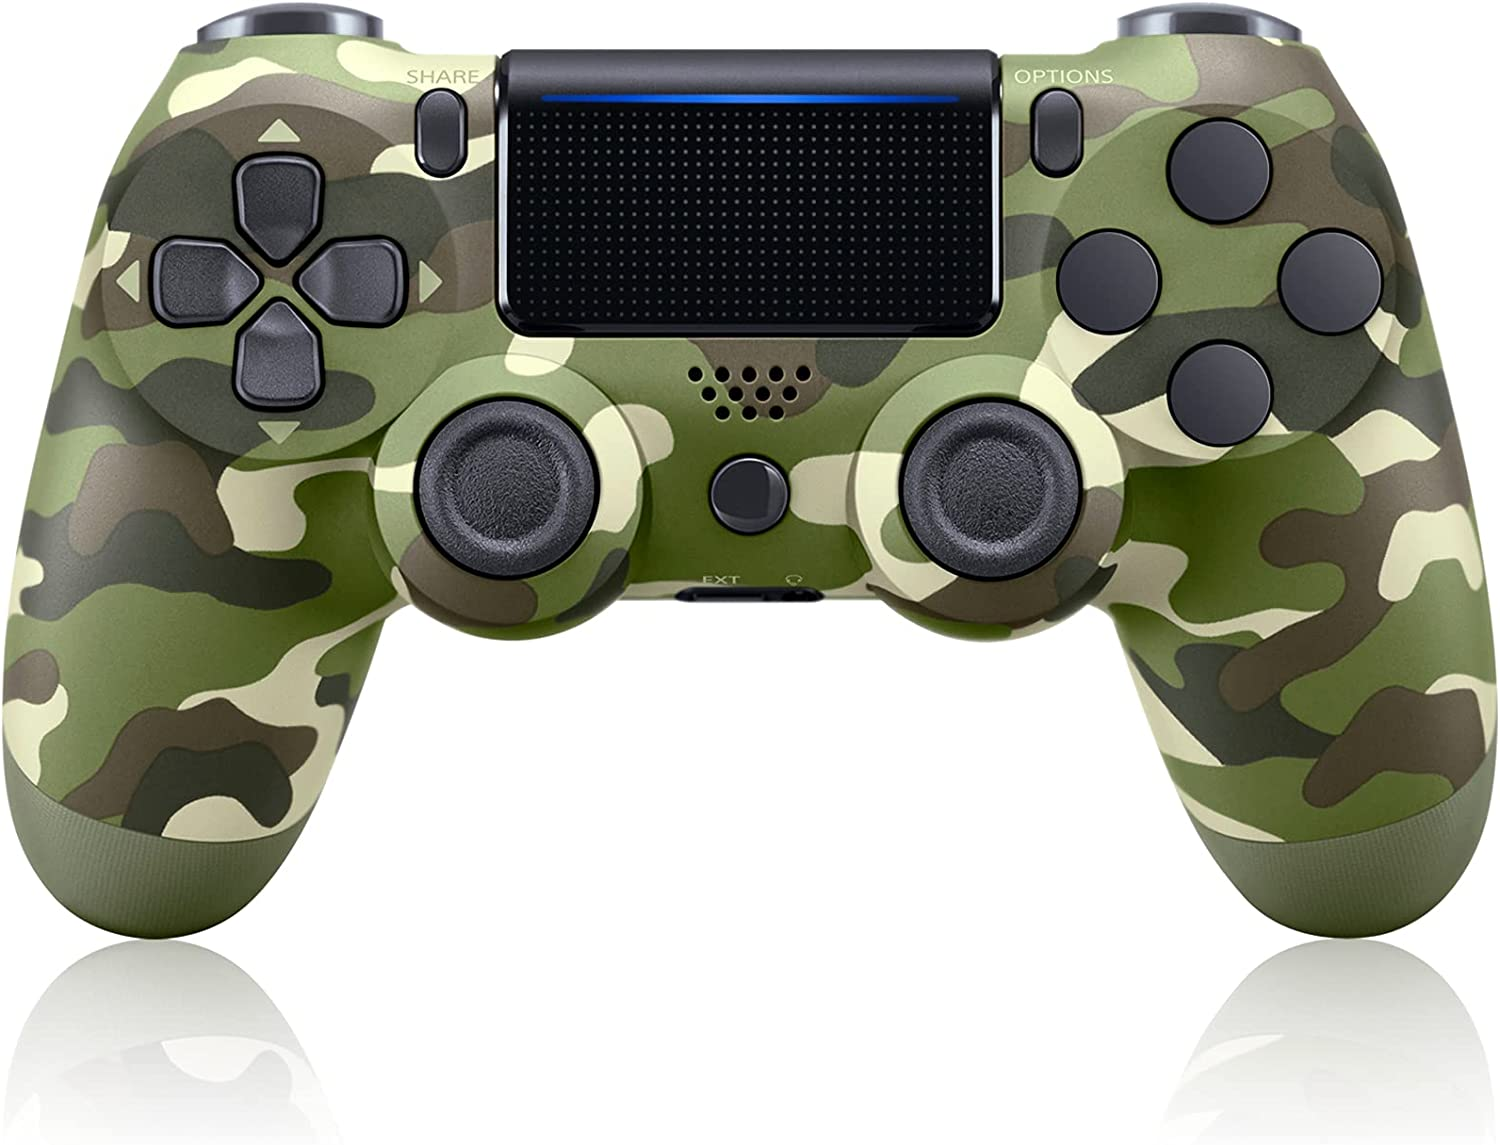 PYMENA Compatible with PS4 Controller Wireless Compatible with Playstation 4/Slim/Pro Console, Game Remote Controller with Dual Vibration - Green Camo